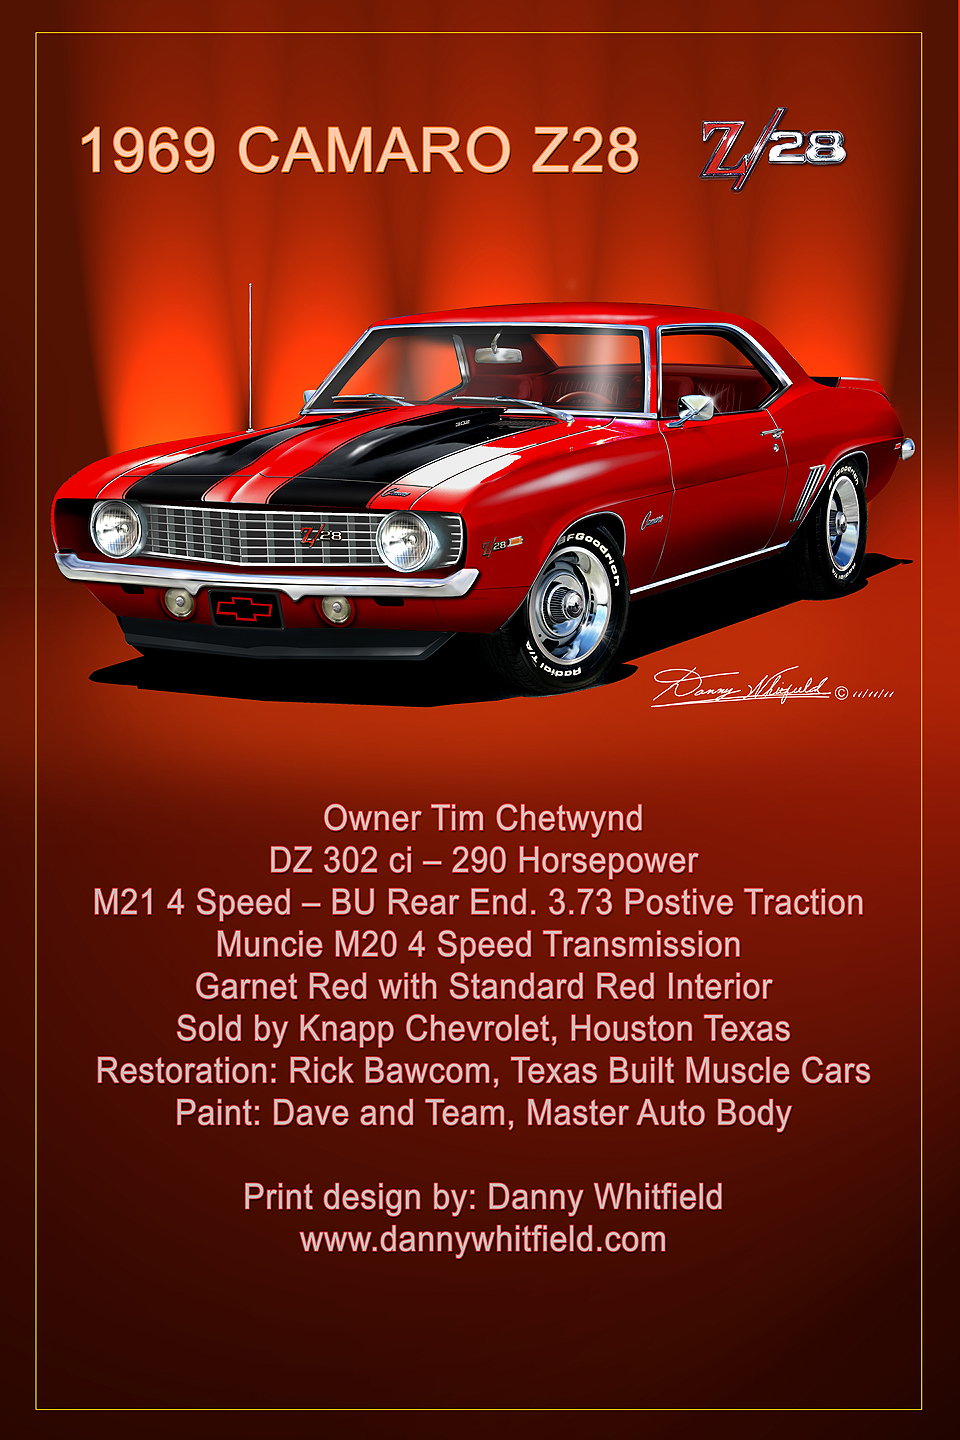 Classic Car Hot Rod Showboard Display Prints DannyWhitifeldcom - Car show signs